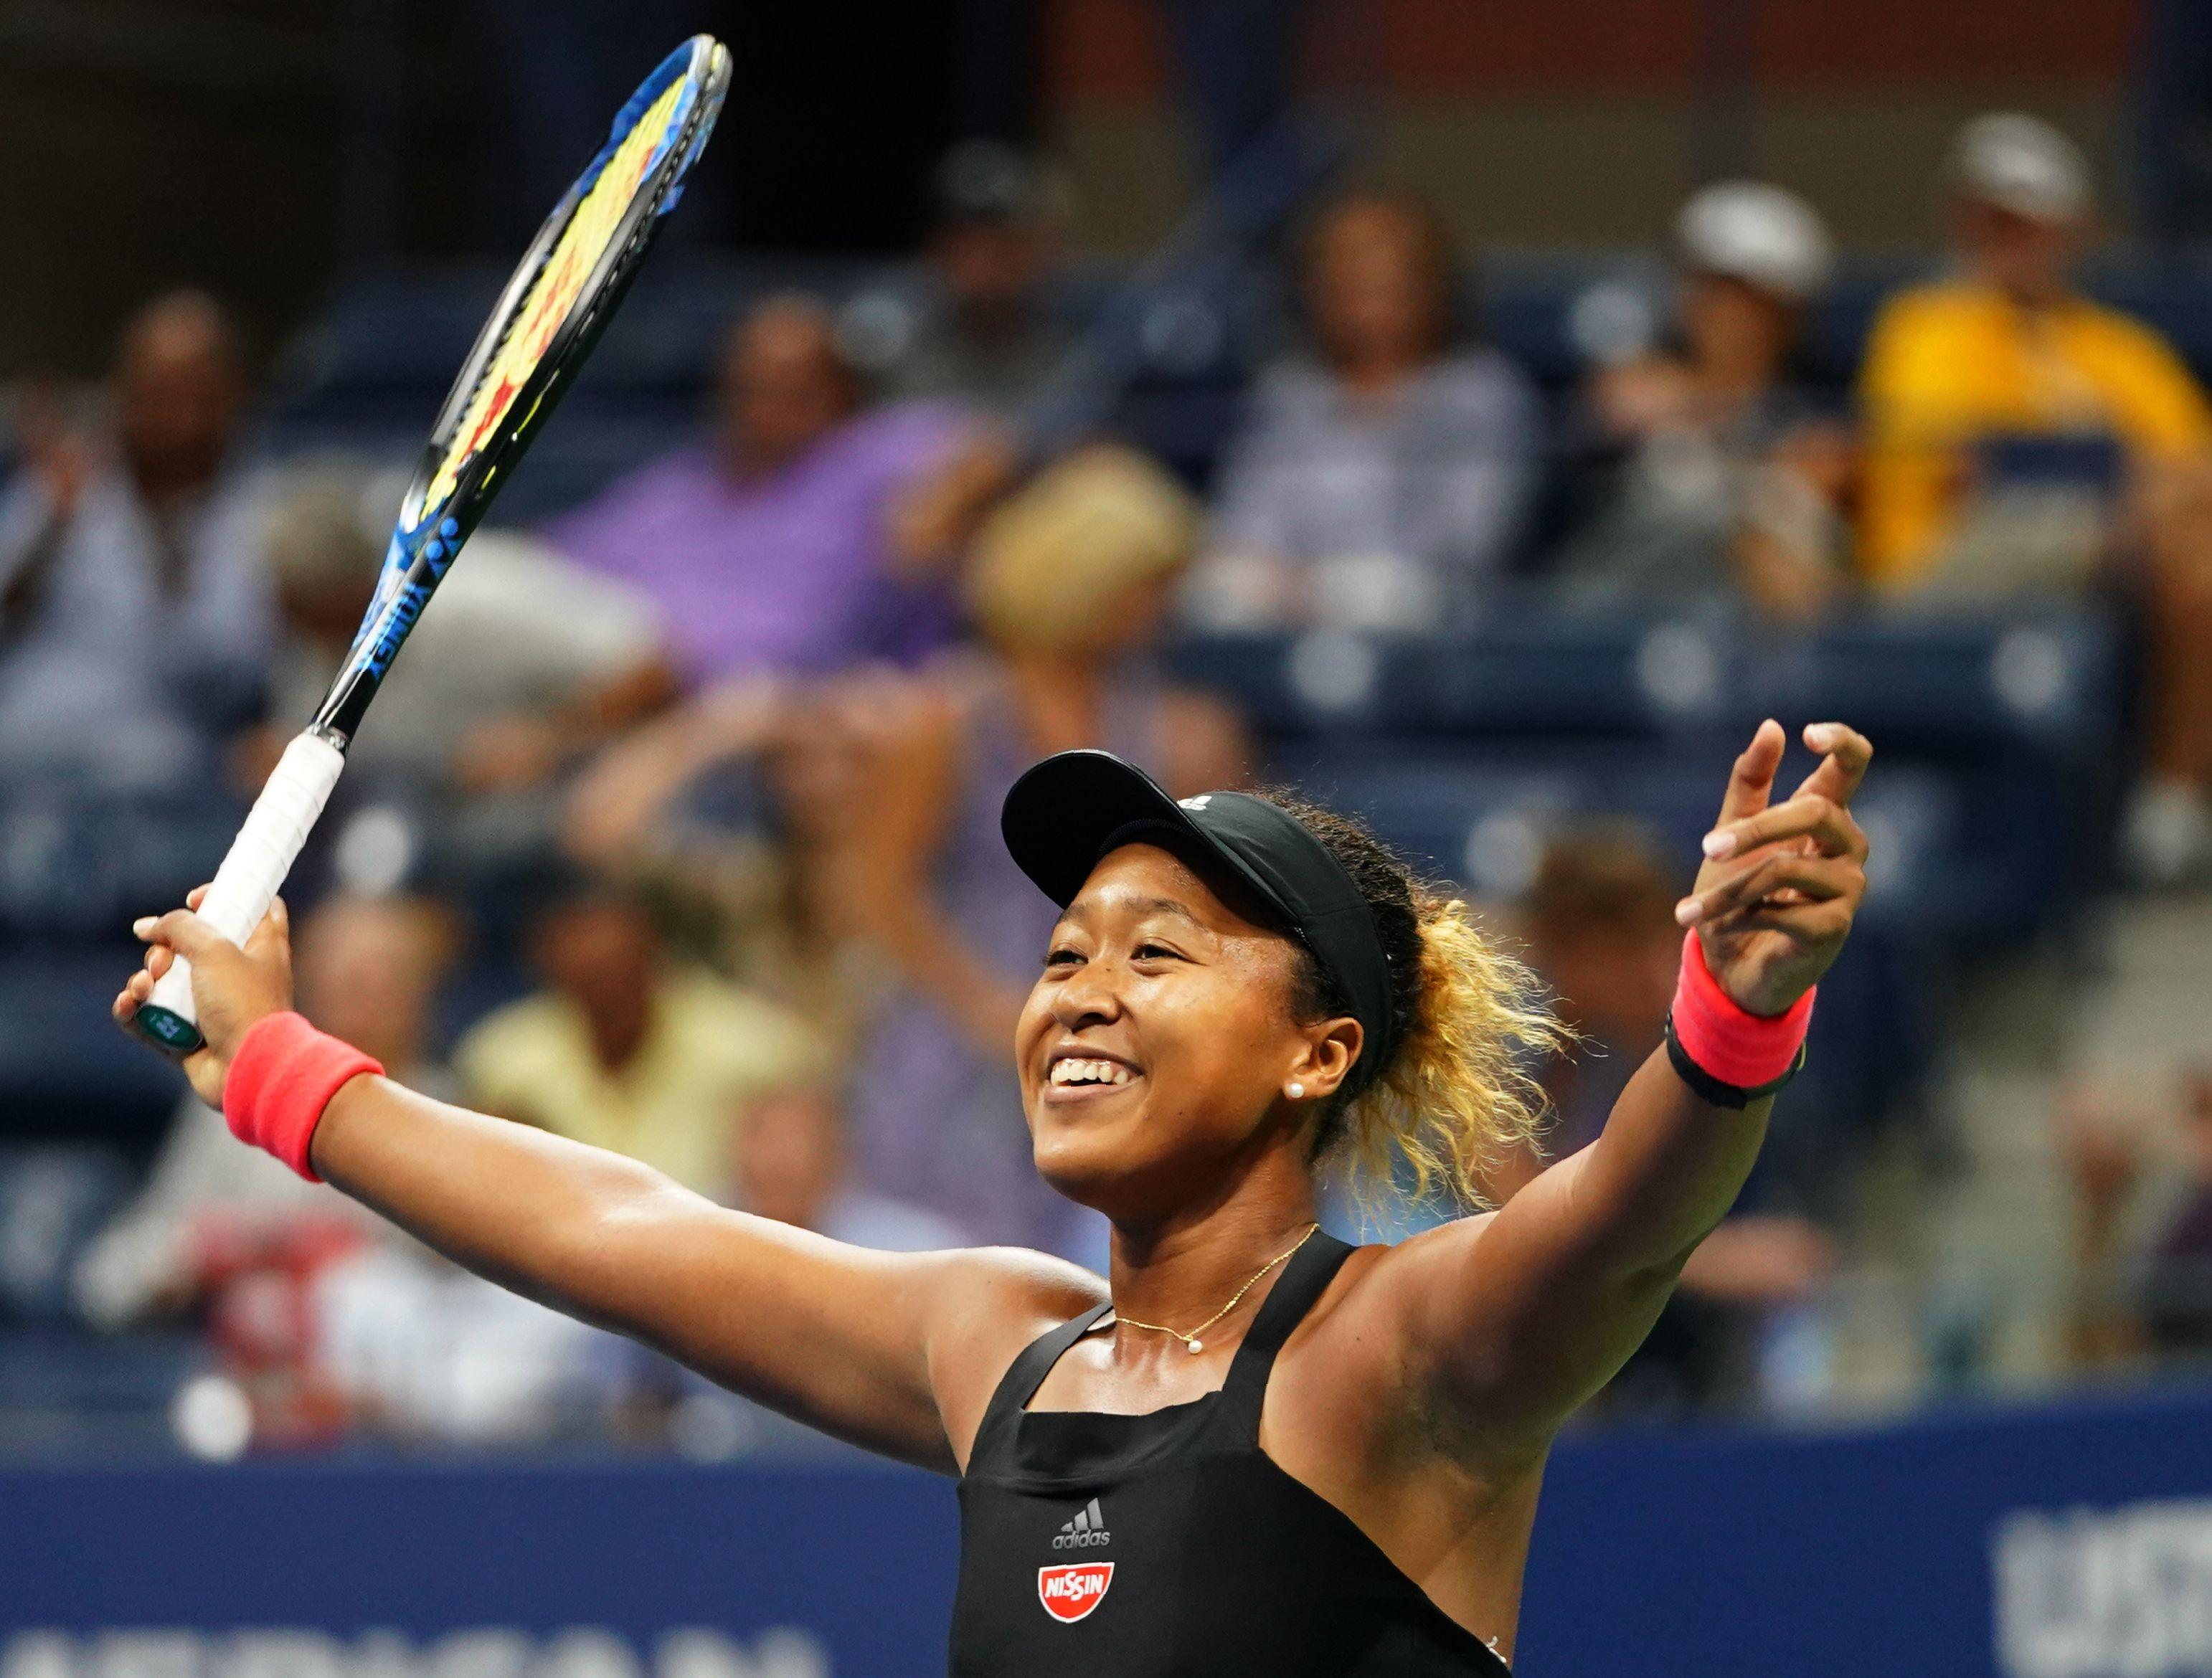 Naomi Osaka has reached her first Grand Slam final